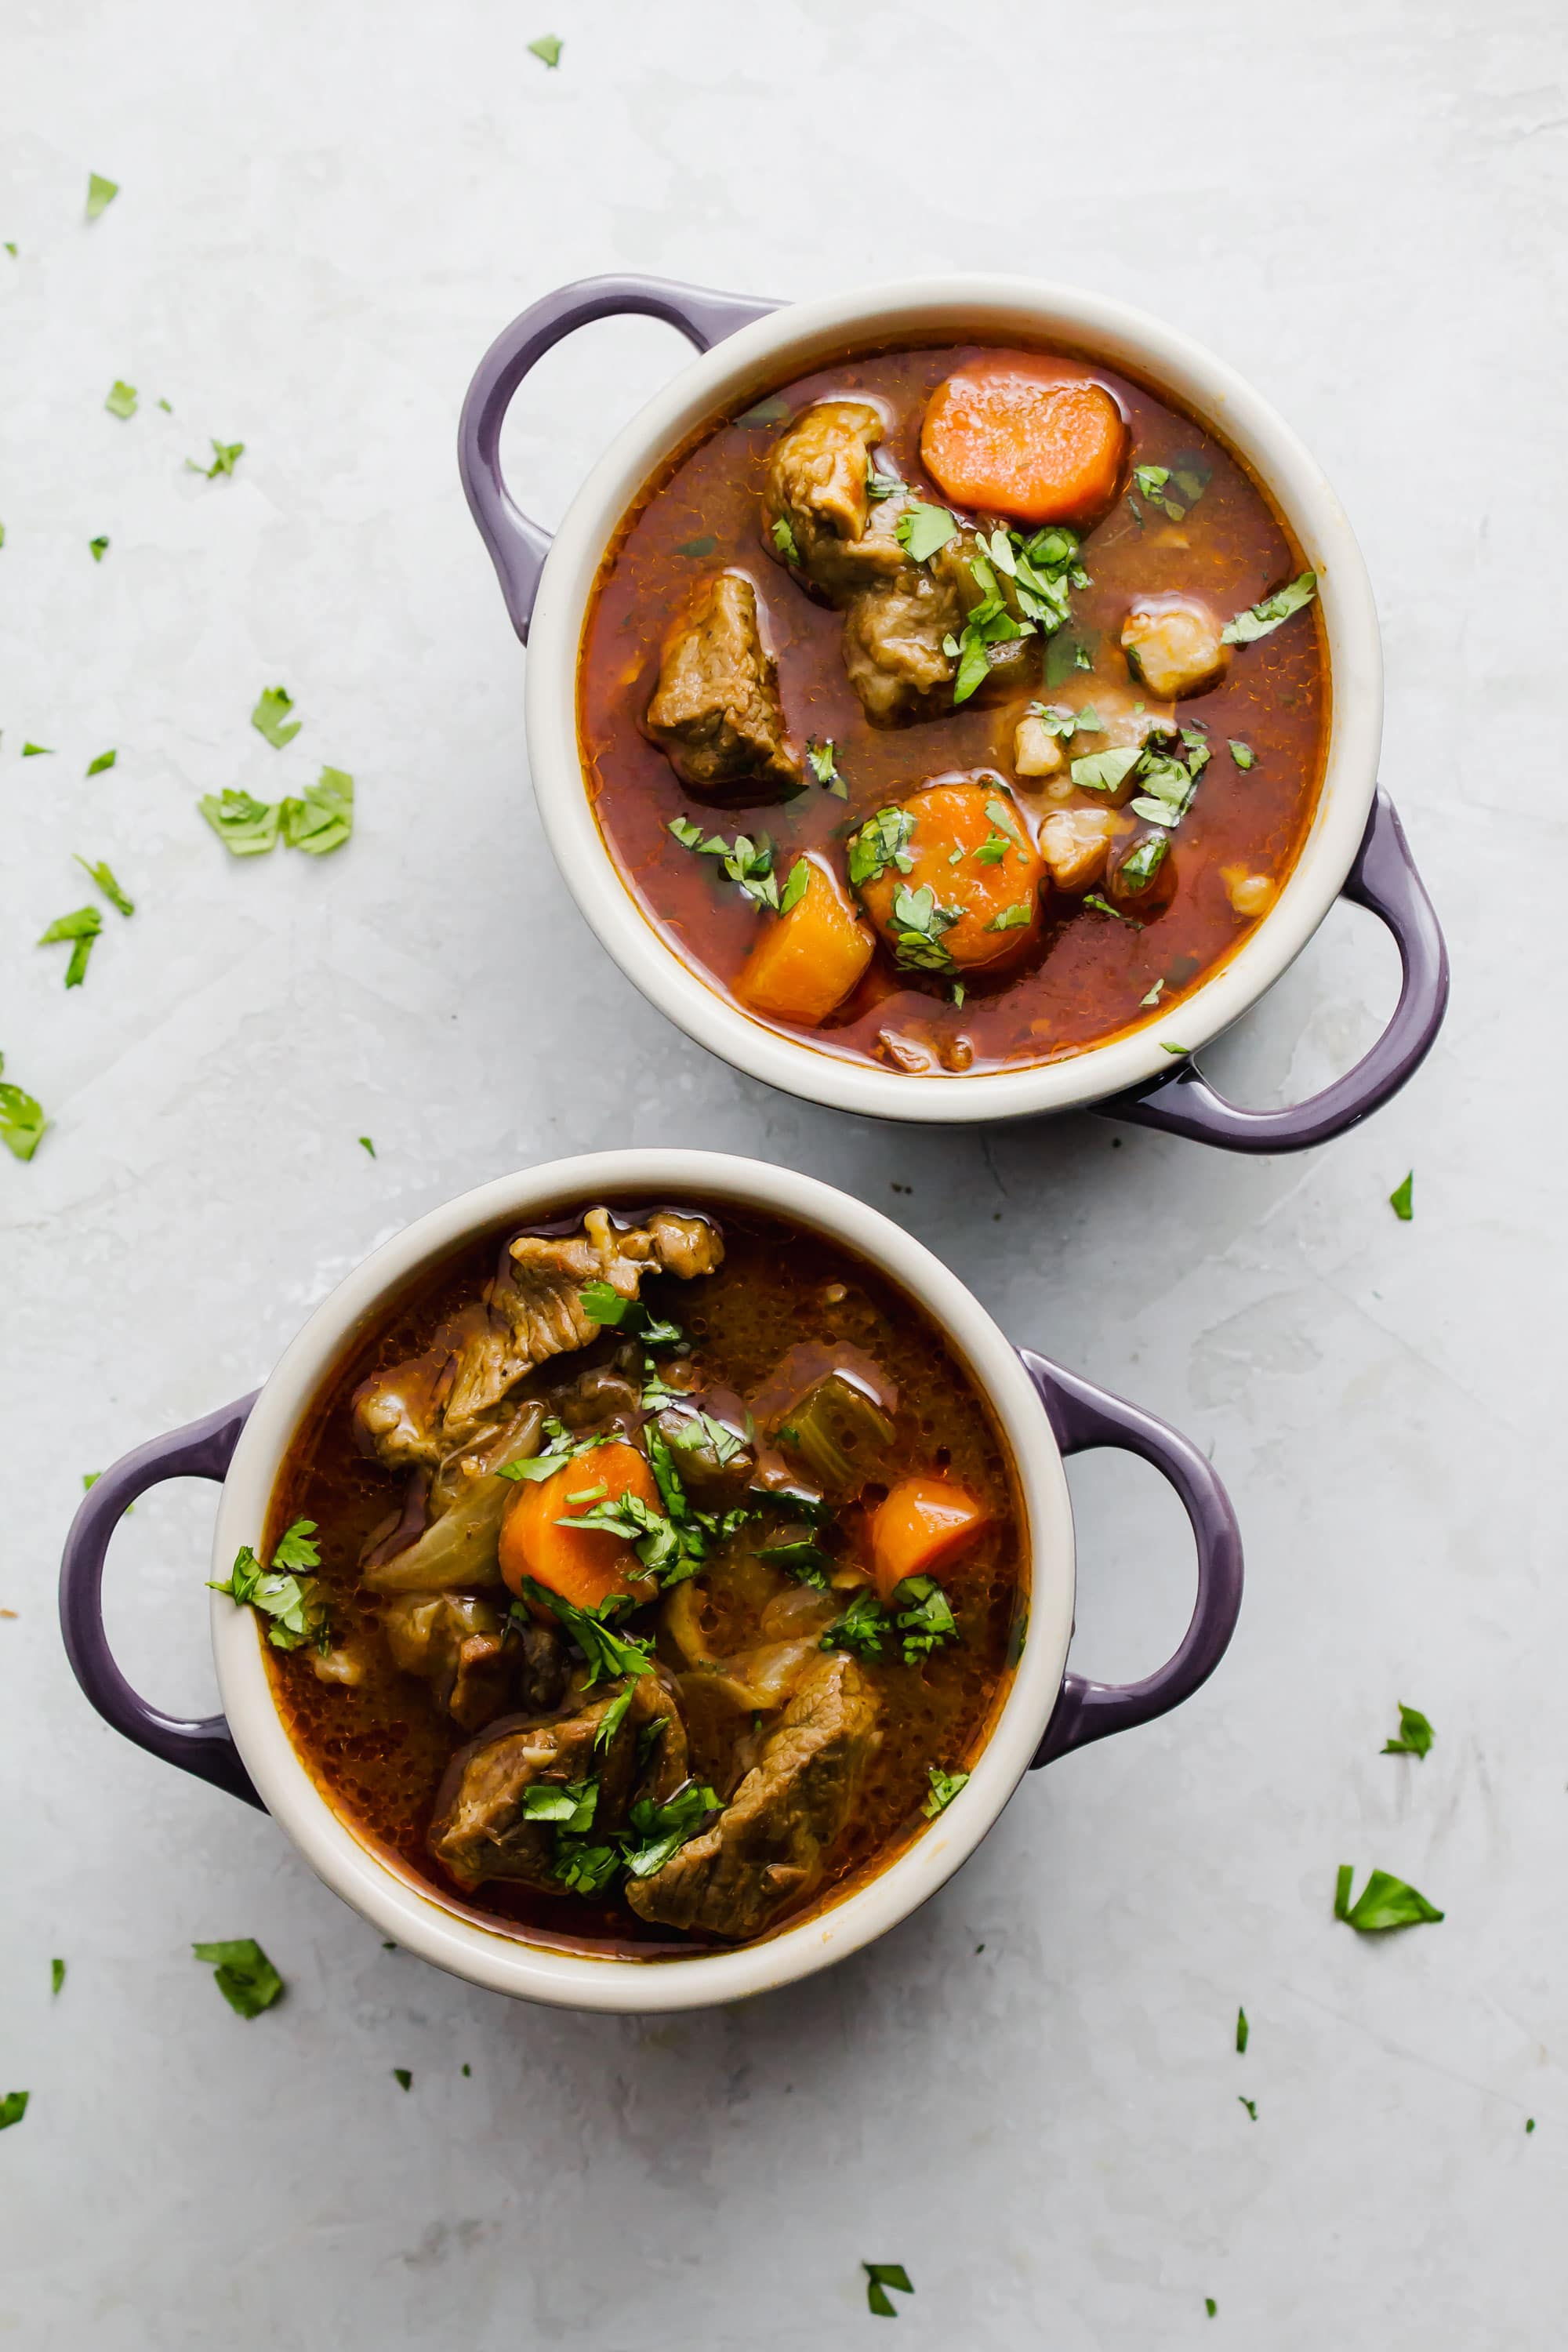 Stout beef stew in small purple soup bowls